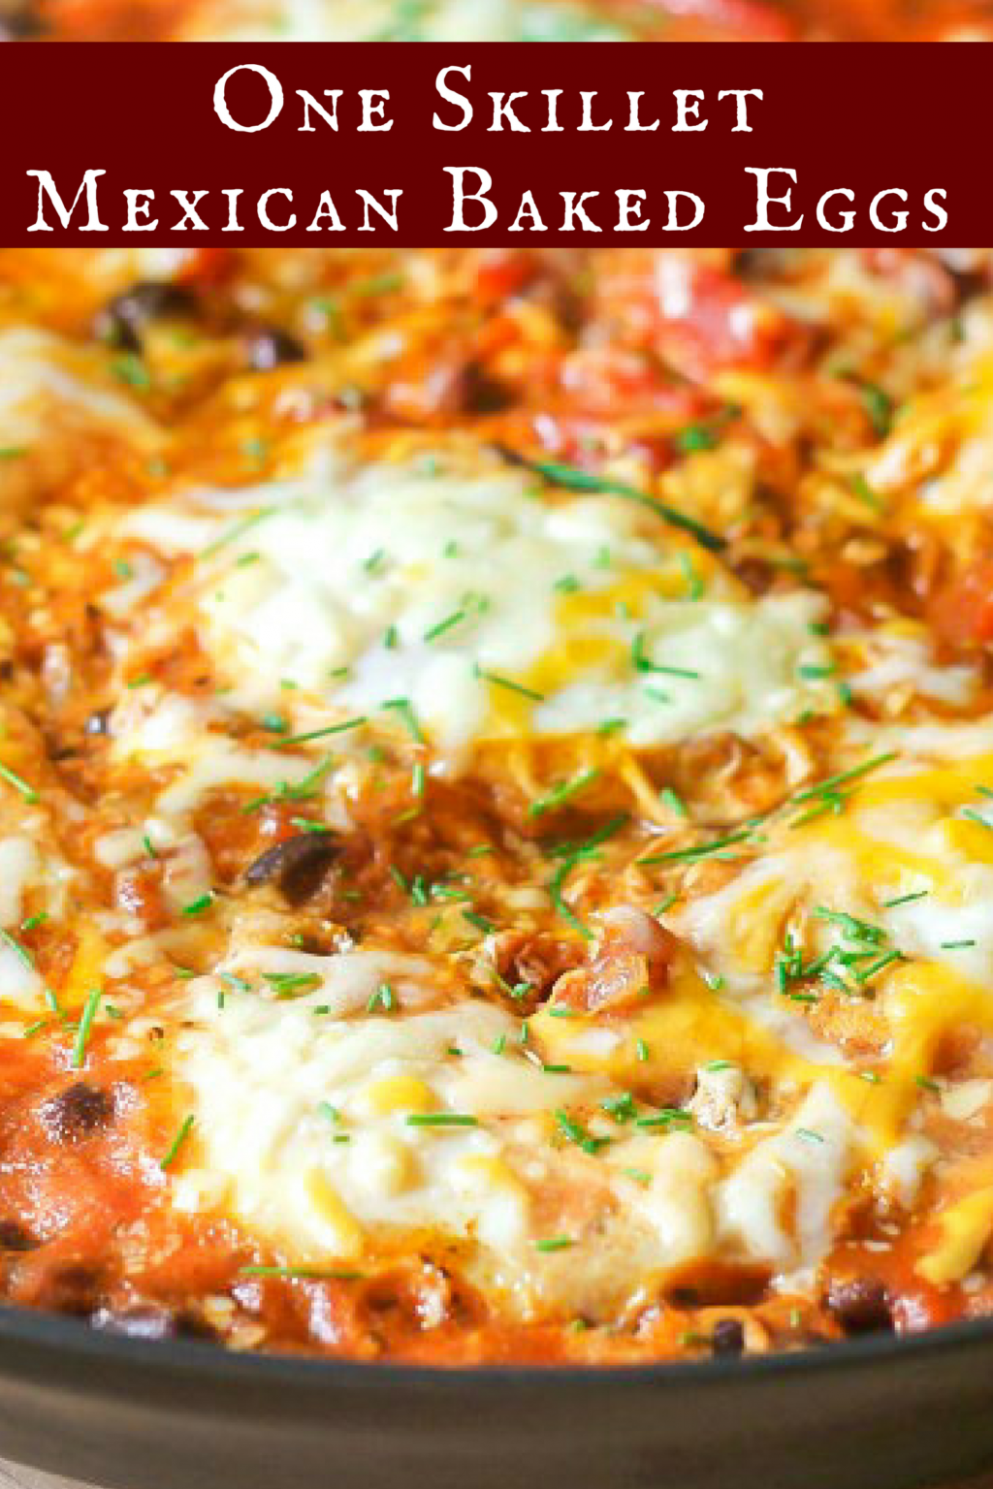 Mexican Baked Eggs (One Skillet) - Recipes Egg Dinner